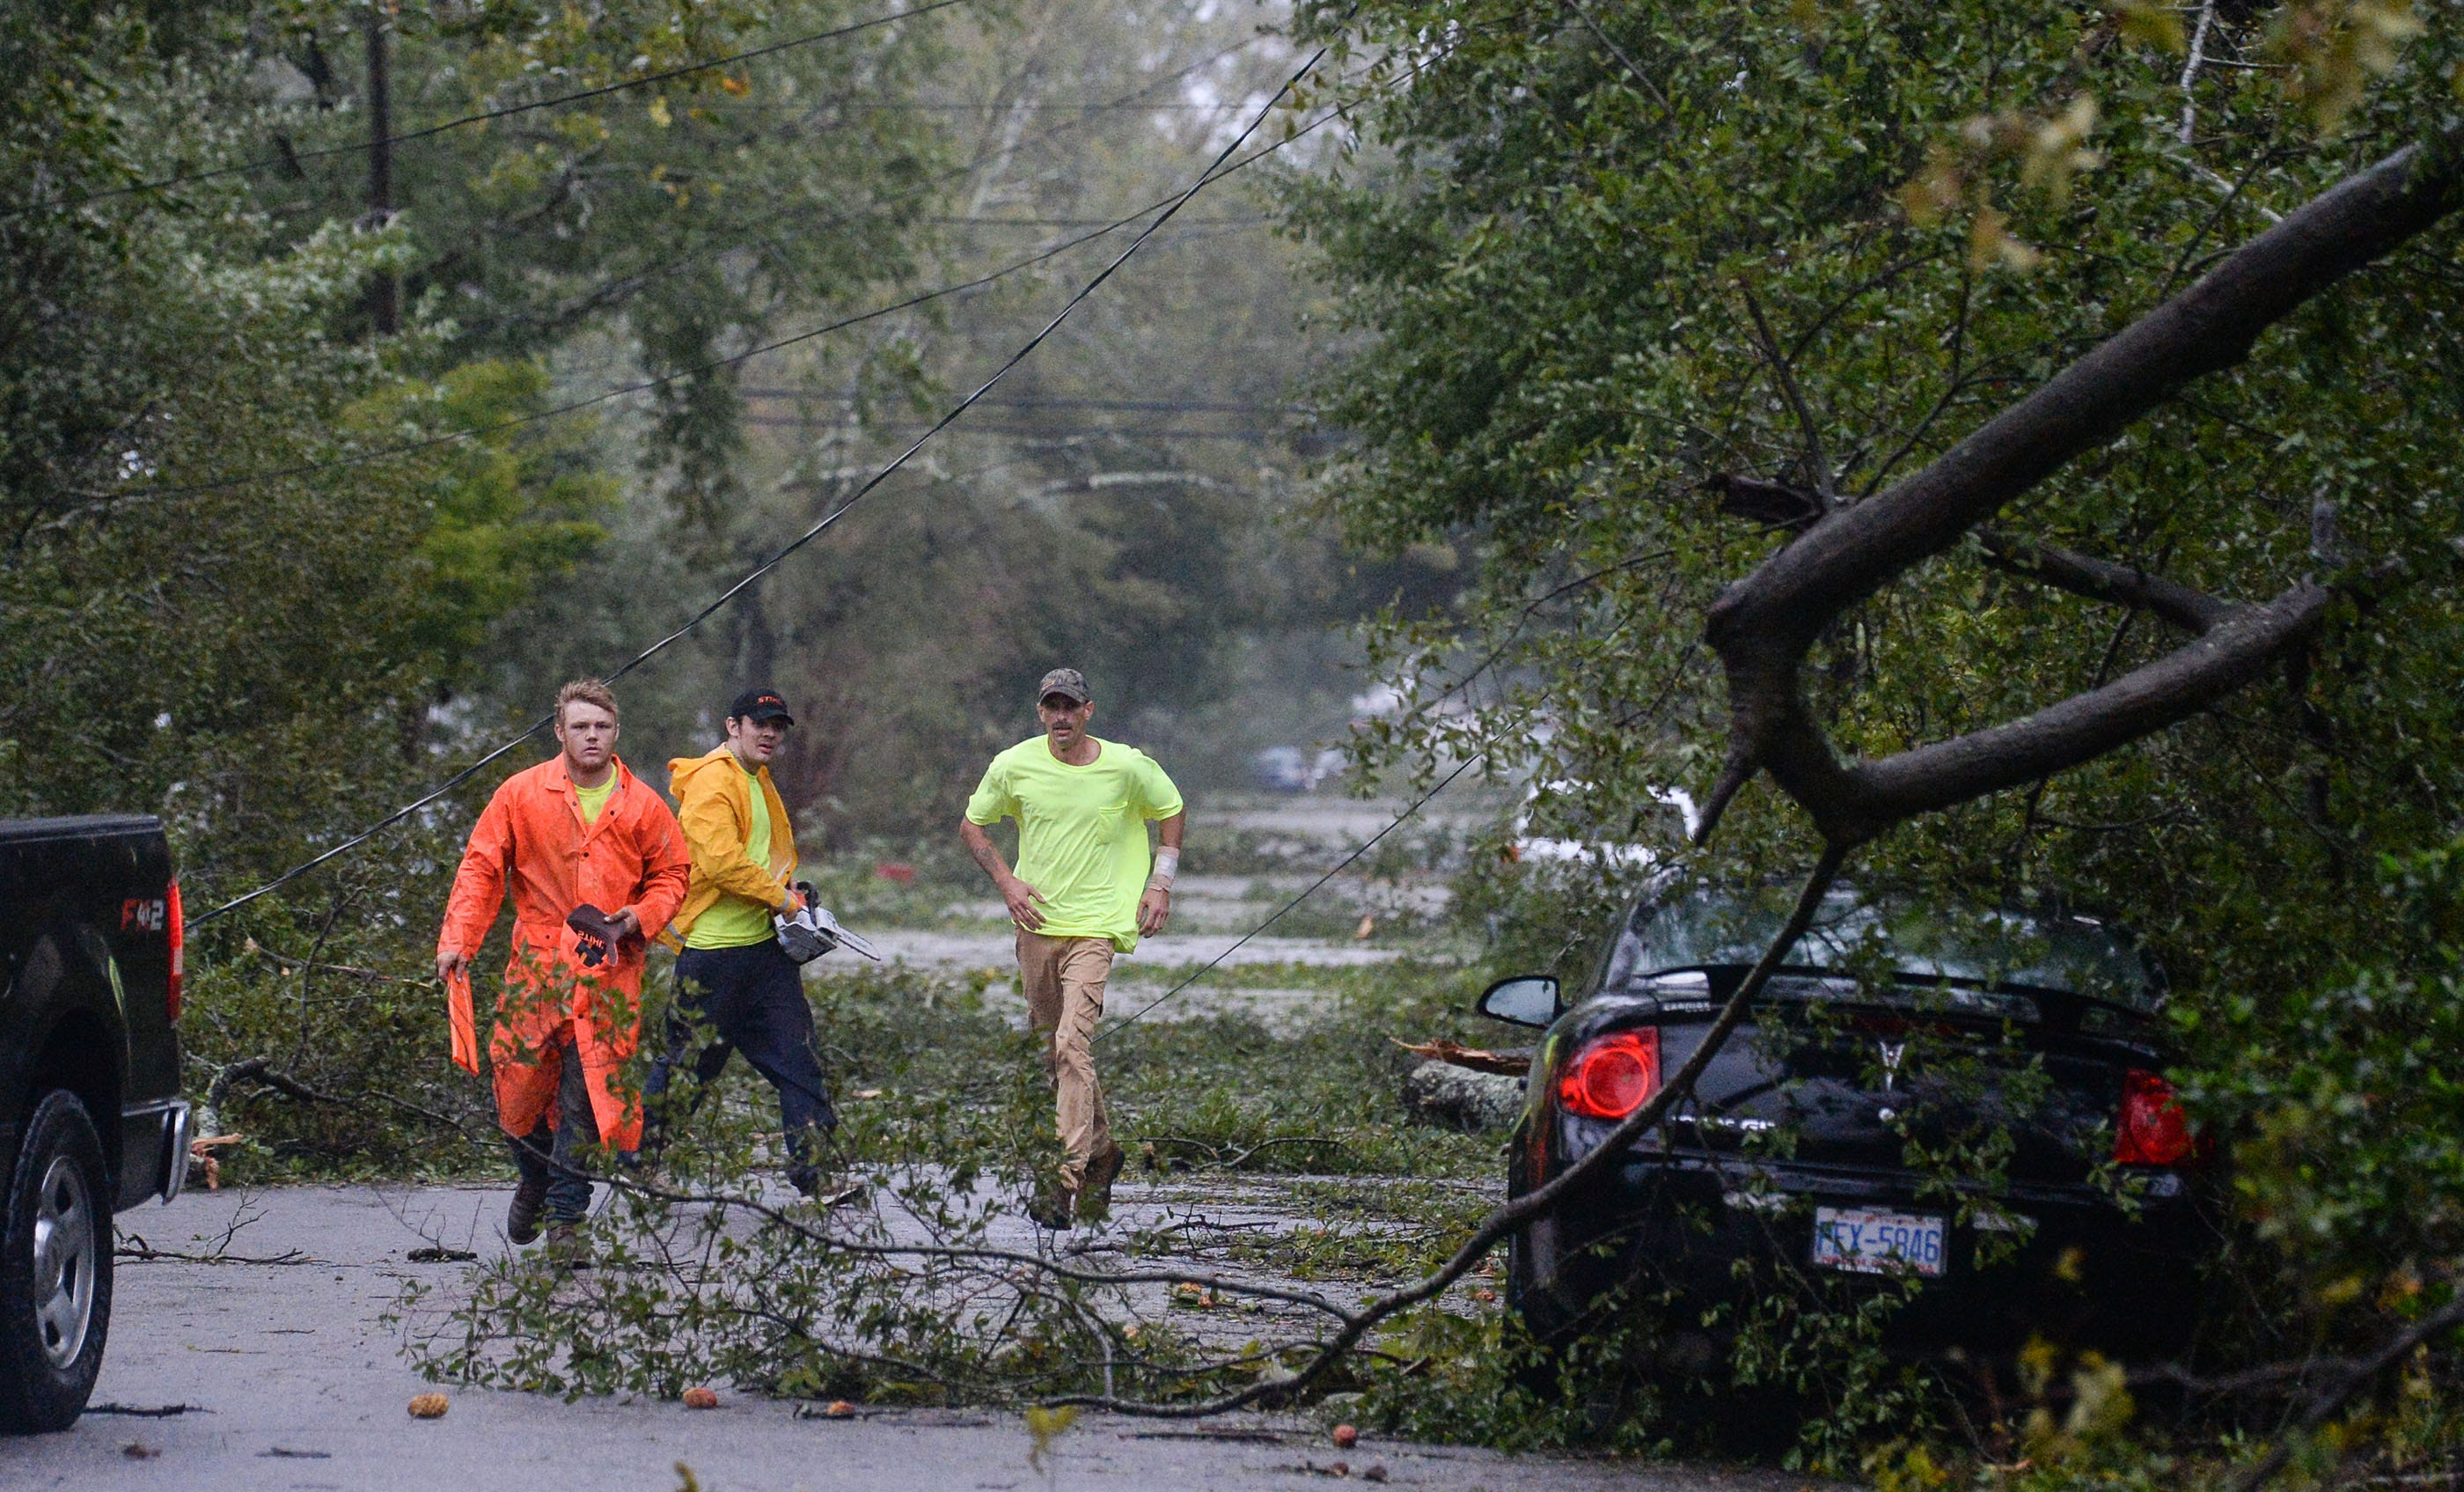 Florence: Wilmington resurfaces after landfall, now bracing for flooding and no power